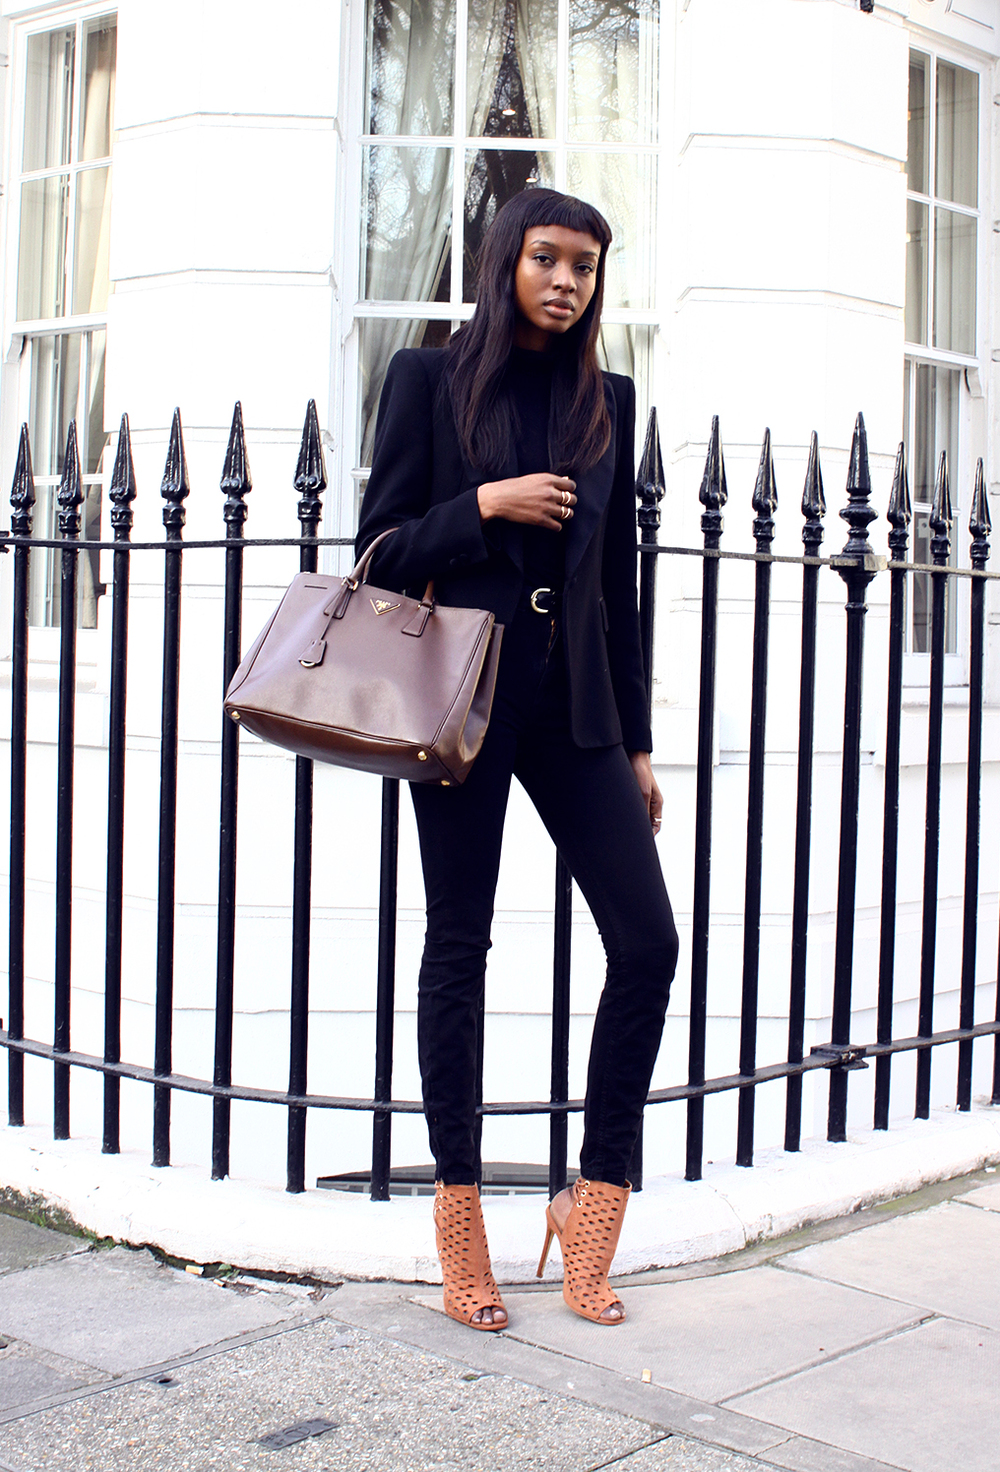 justthedesign: Street Style, March 2015: Natasha Ndlovu is wearing a black Zara blazer with an Asos turtleneck, American Apparel jeans and Missguided camel heels  Shoes on point